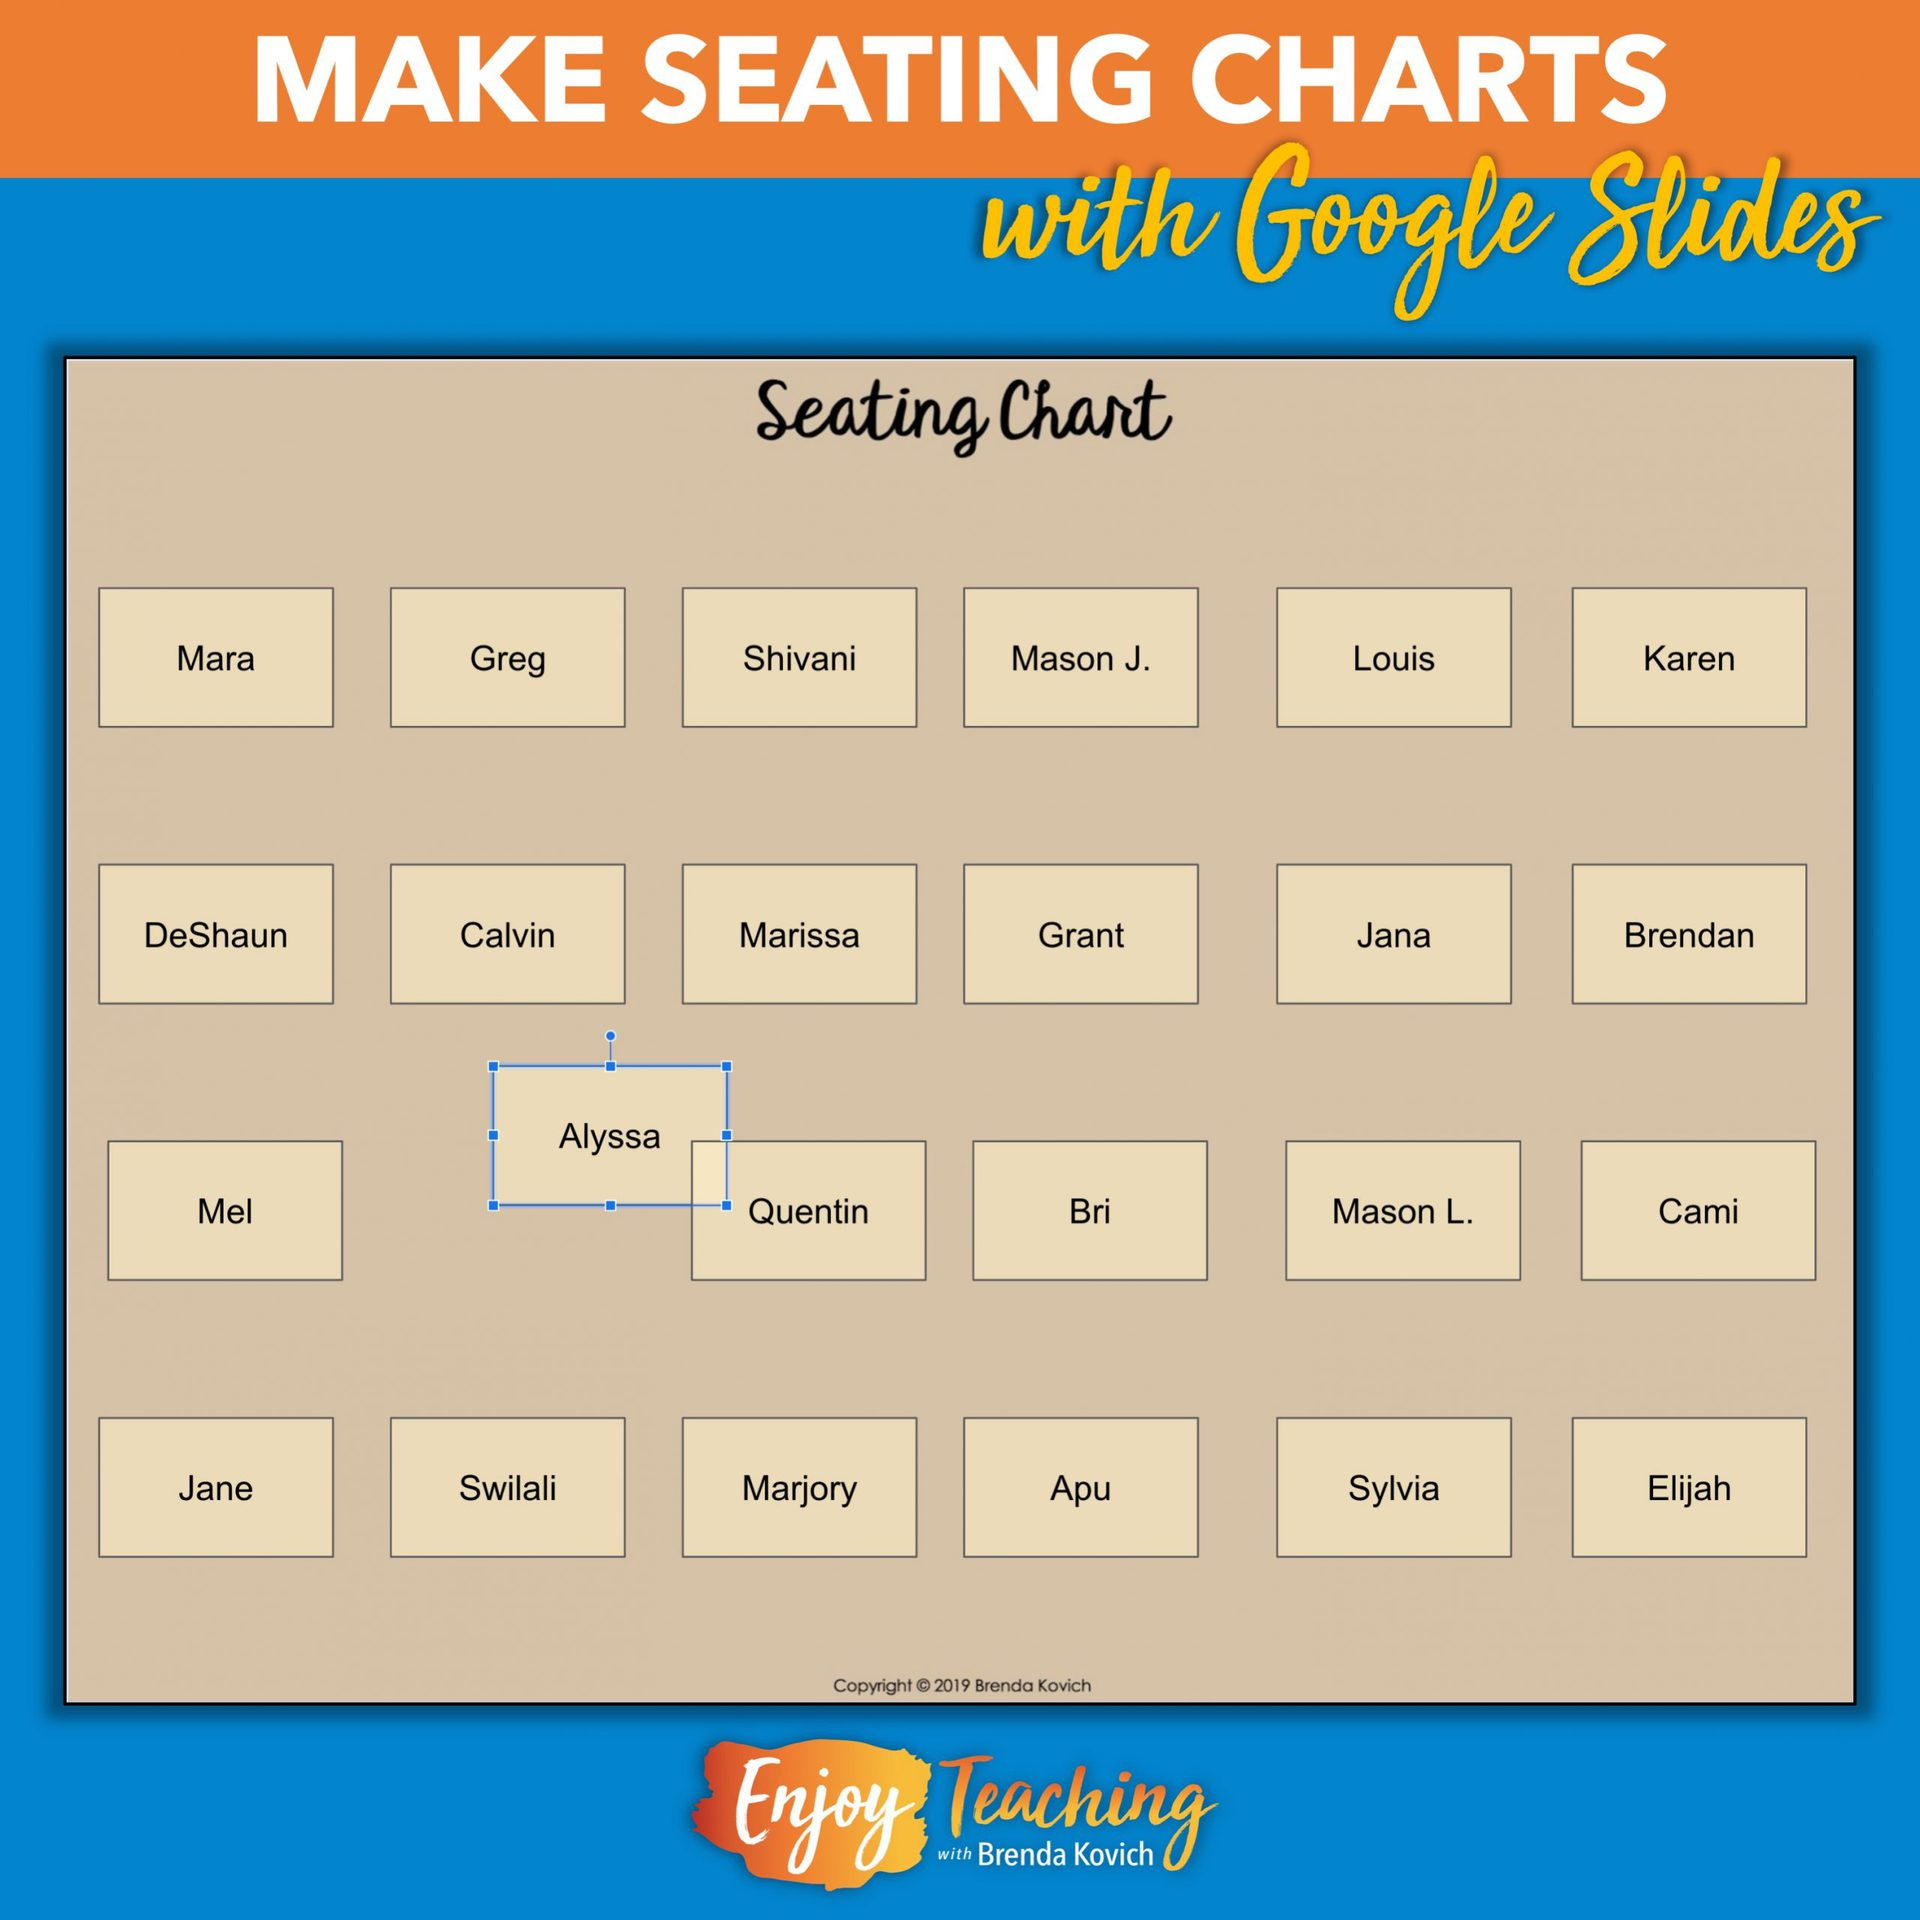 How To Make A Digital Seating Chart With Google Slides Make seating chart online free